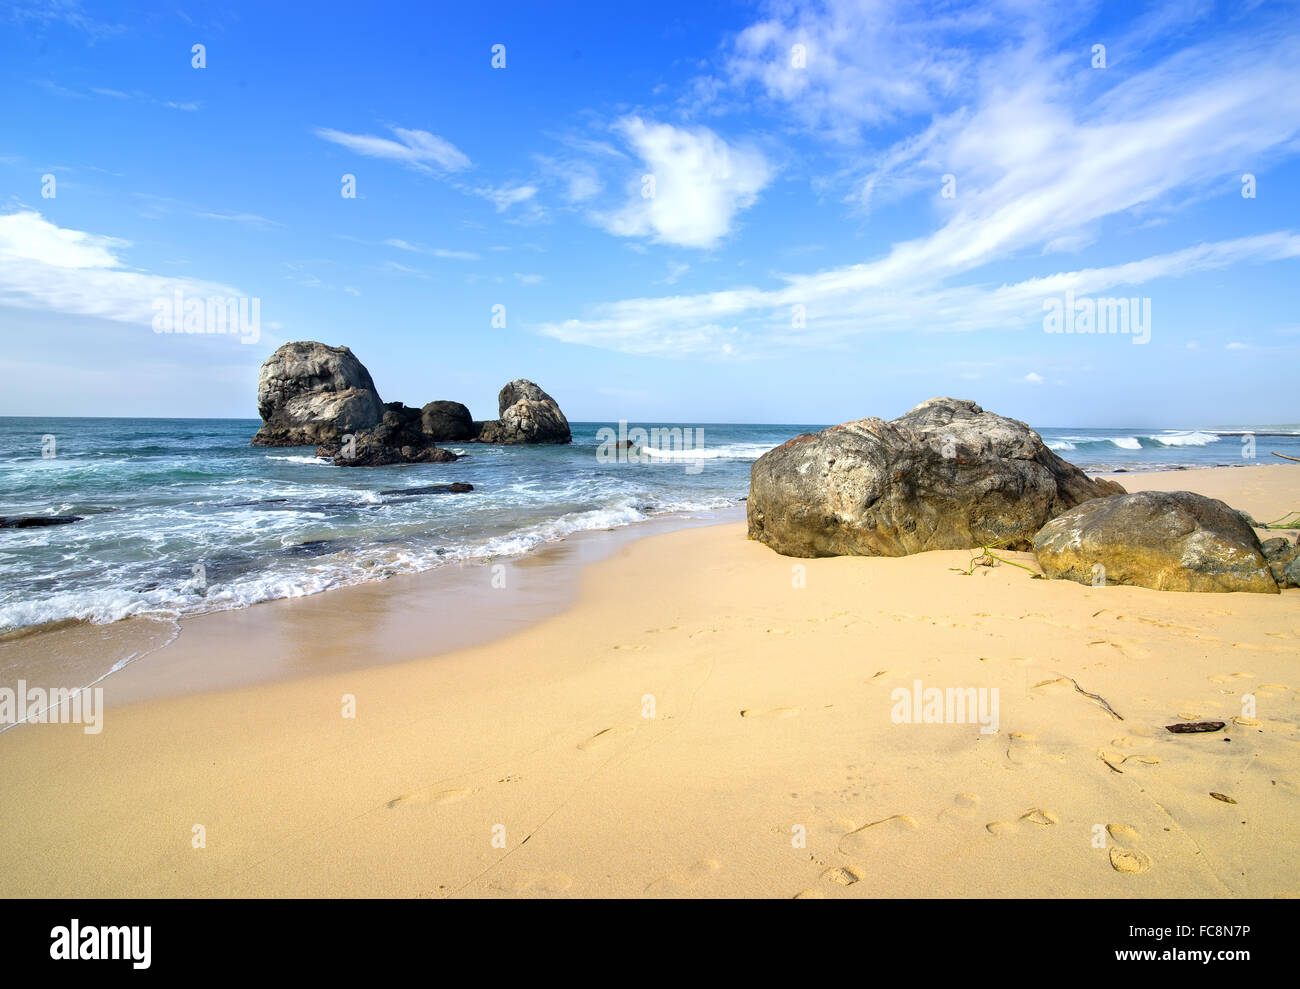 Big stones in the ocean and on a beach of Sri Lanka - Stock Image